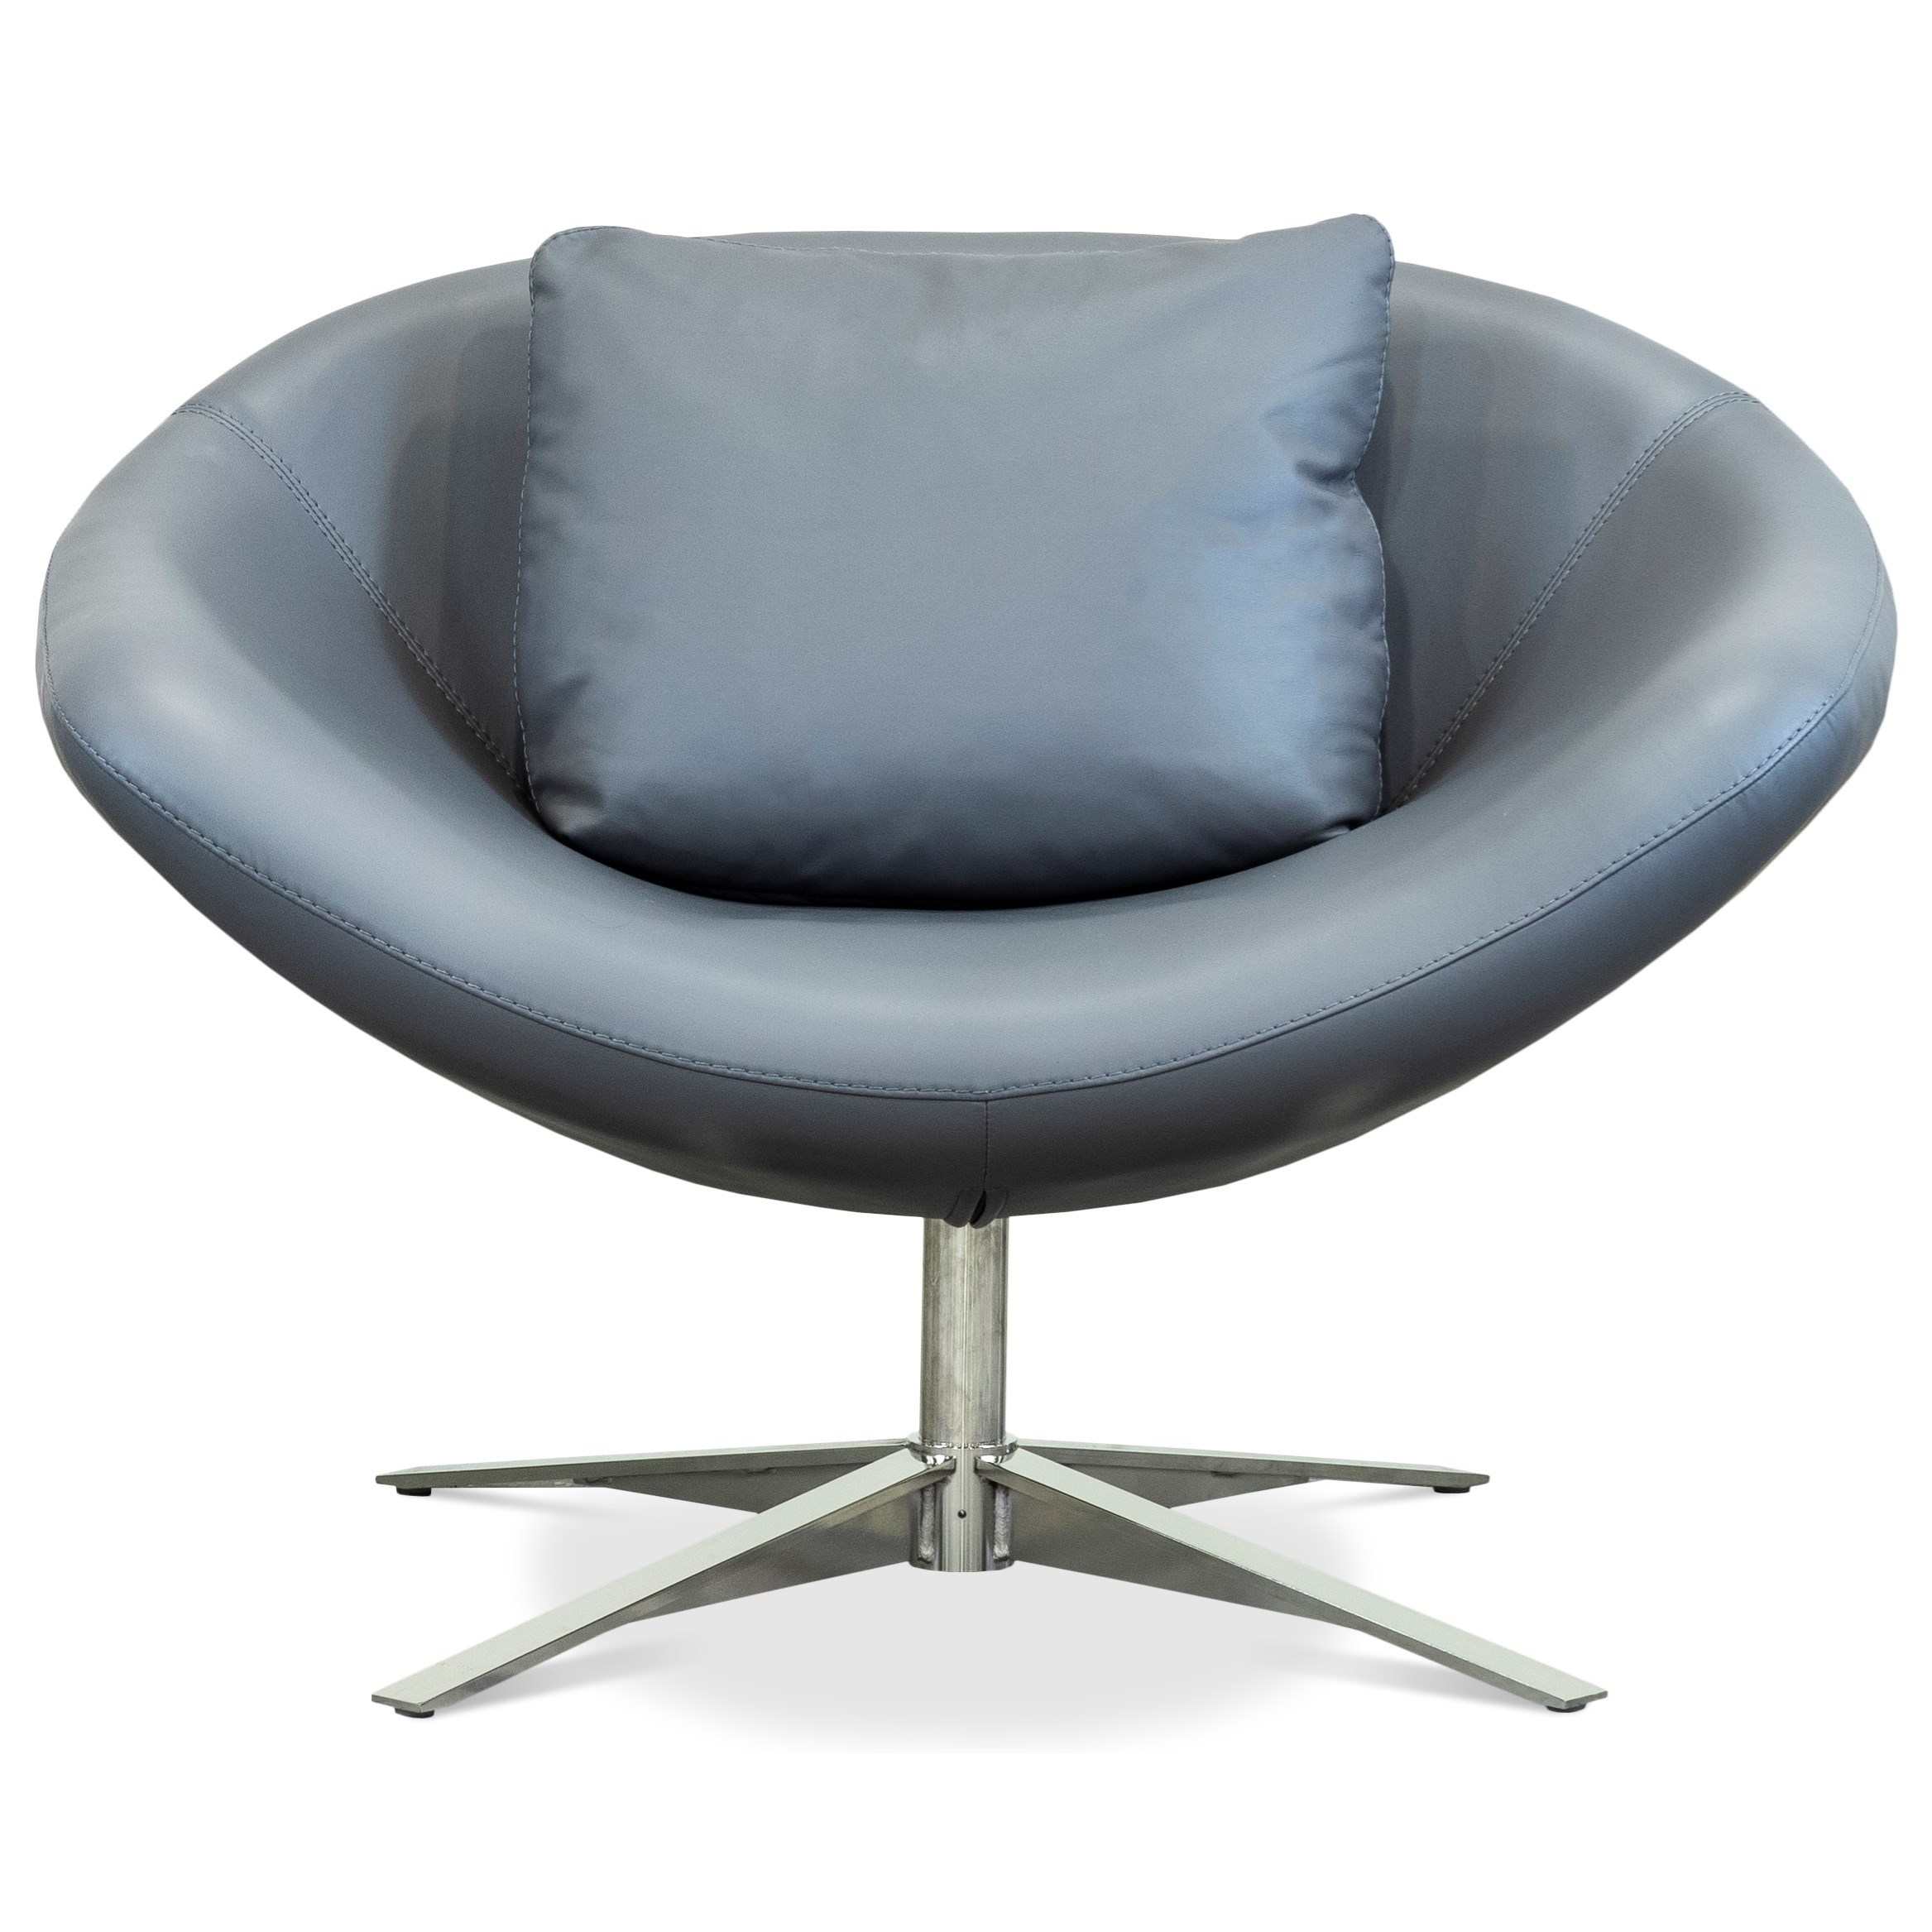 Parma Swivel Chair by American Leather at Williams & Kay